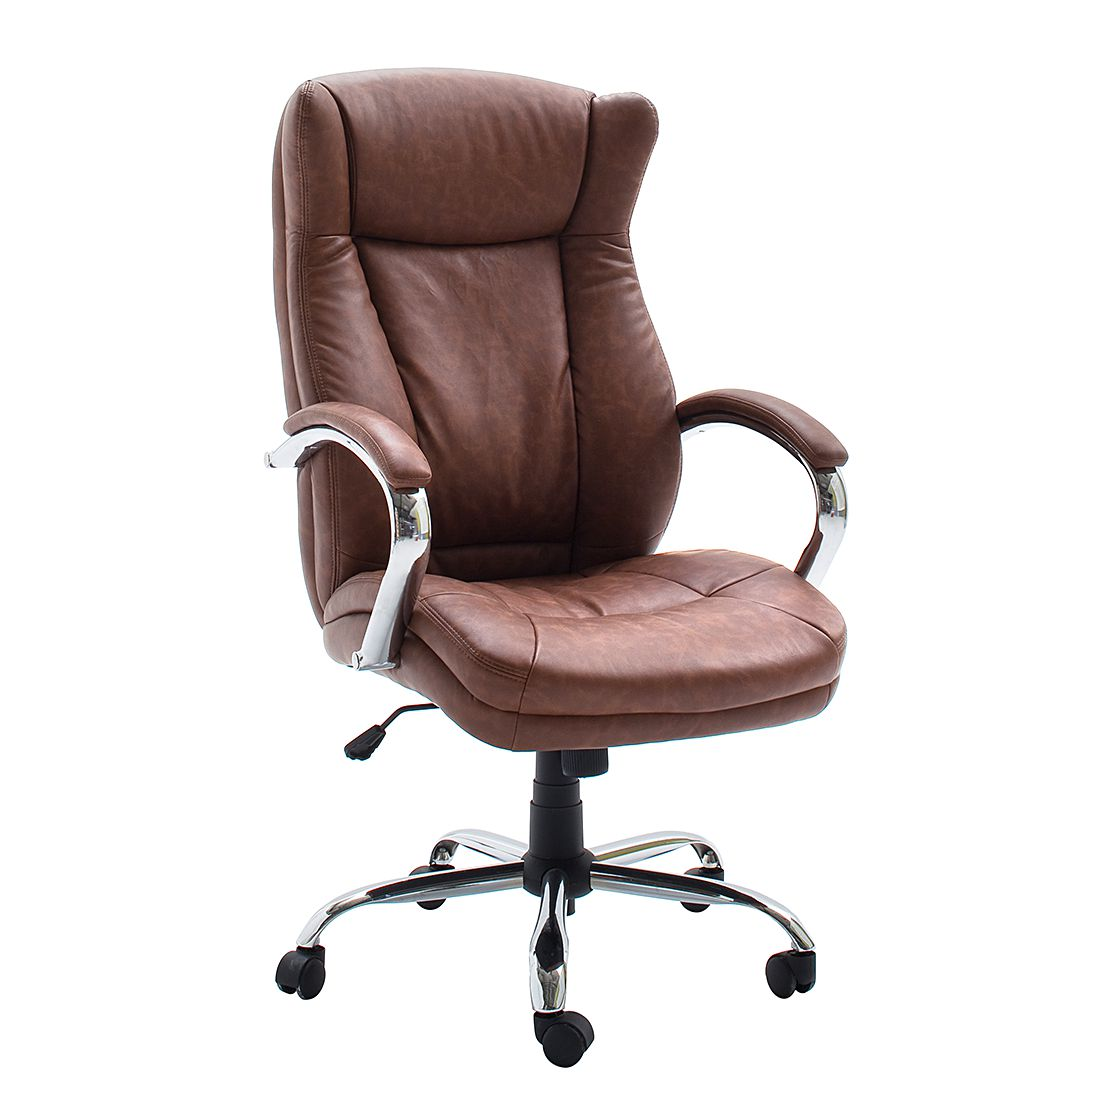 Home 24 - Fauteuil de direction director - imitation cuir - cognac vintage, home24 office